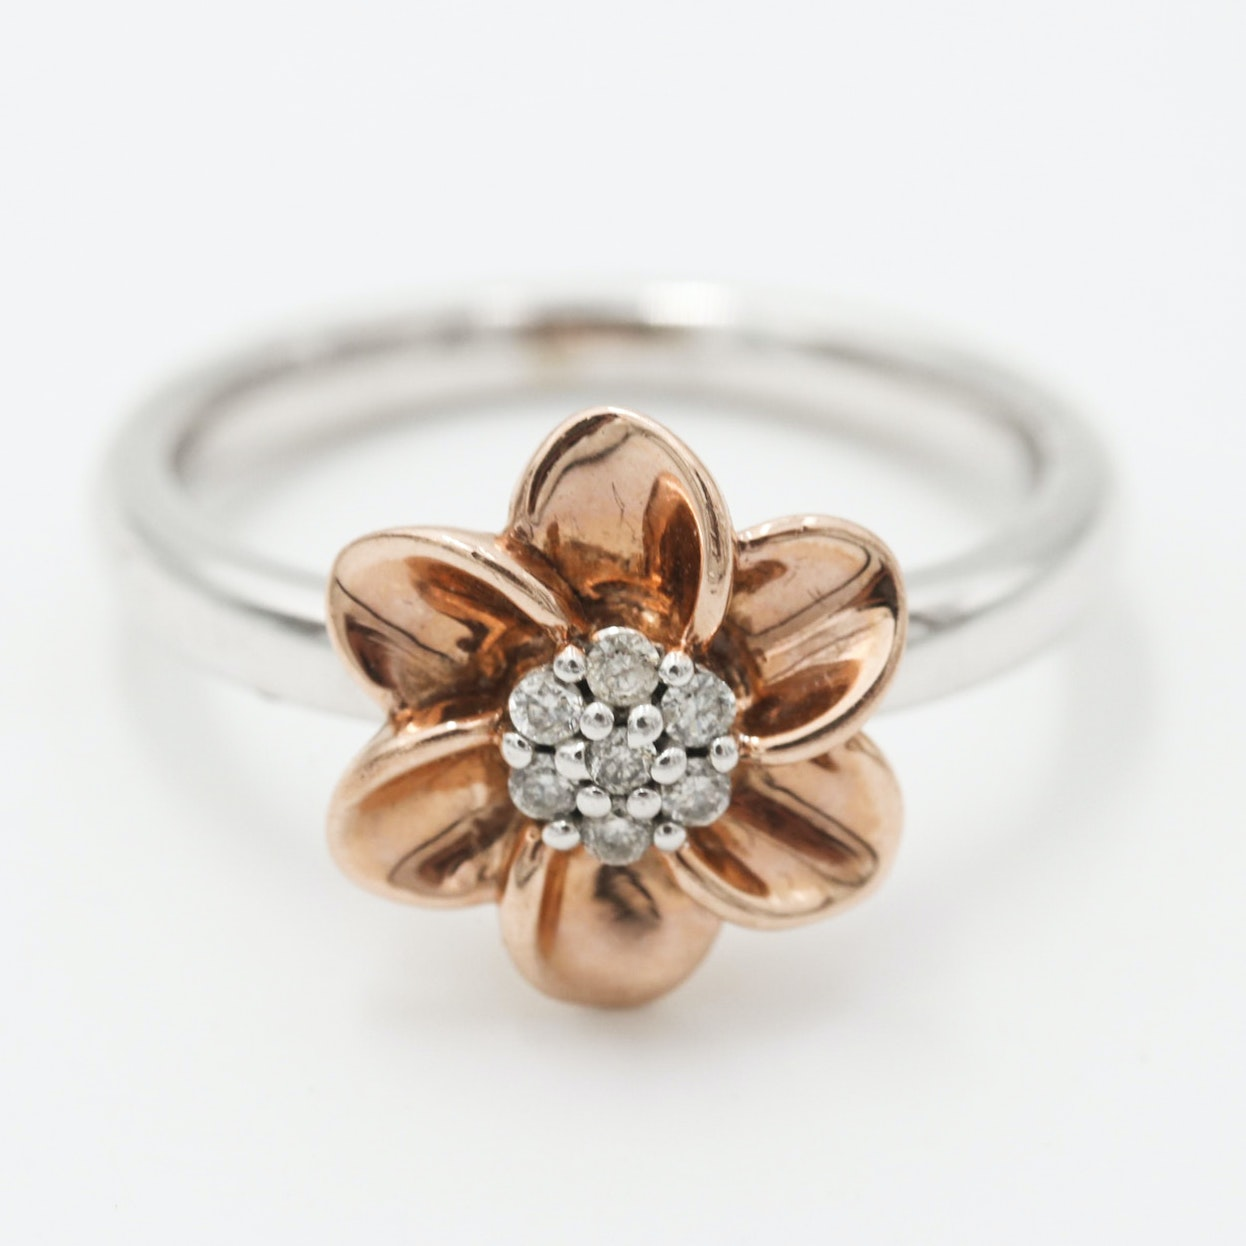 10K White Gold Diamond Flower Ring with Rose Gold Petals